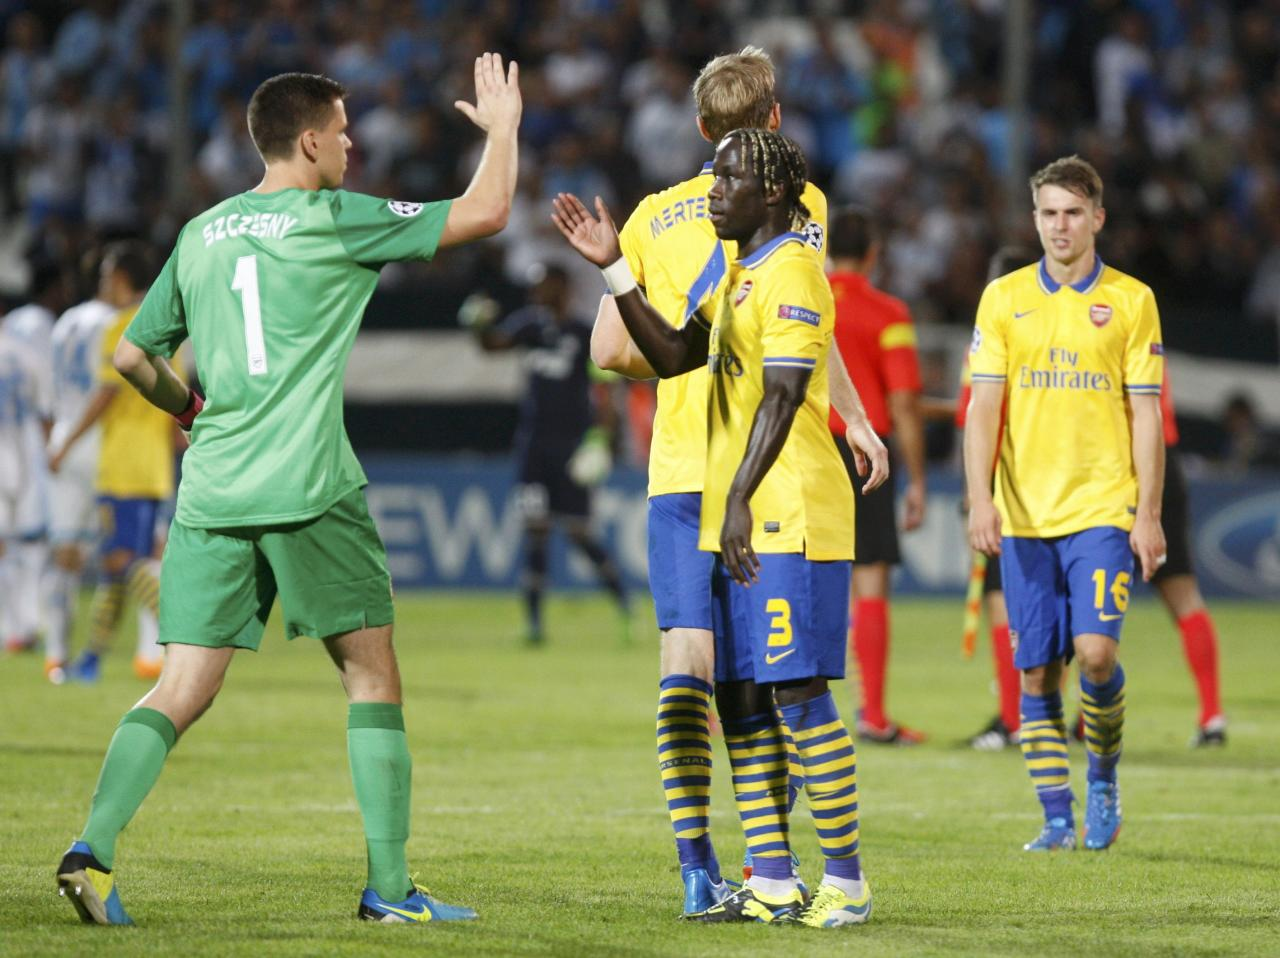 Arsenal's Wojciech Szczesny and Bacary Sagna (R) celebrate after their team won their Group F Champions League soccer match against Olympique Marseille at the Velodrome stadium in Marseille, September 18, 2013. REUTERS/Philippe Laurenson (FRANCE - Tags: SPORT SOCCER)